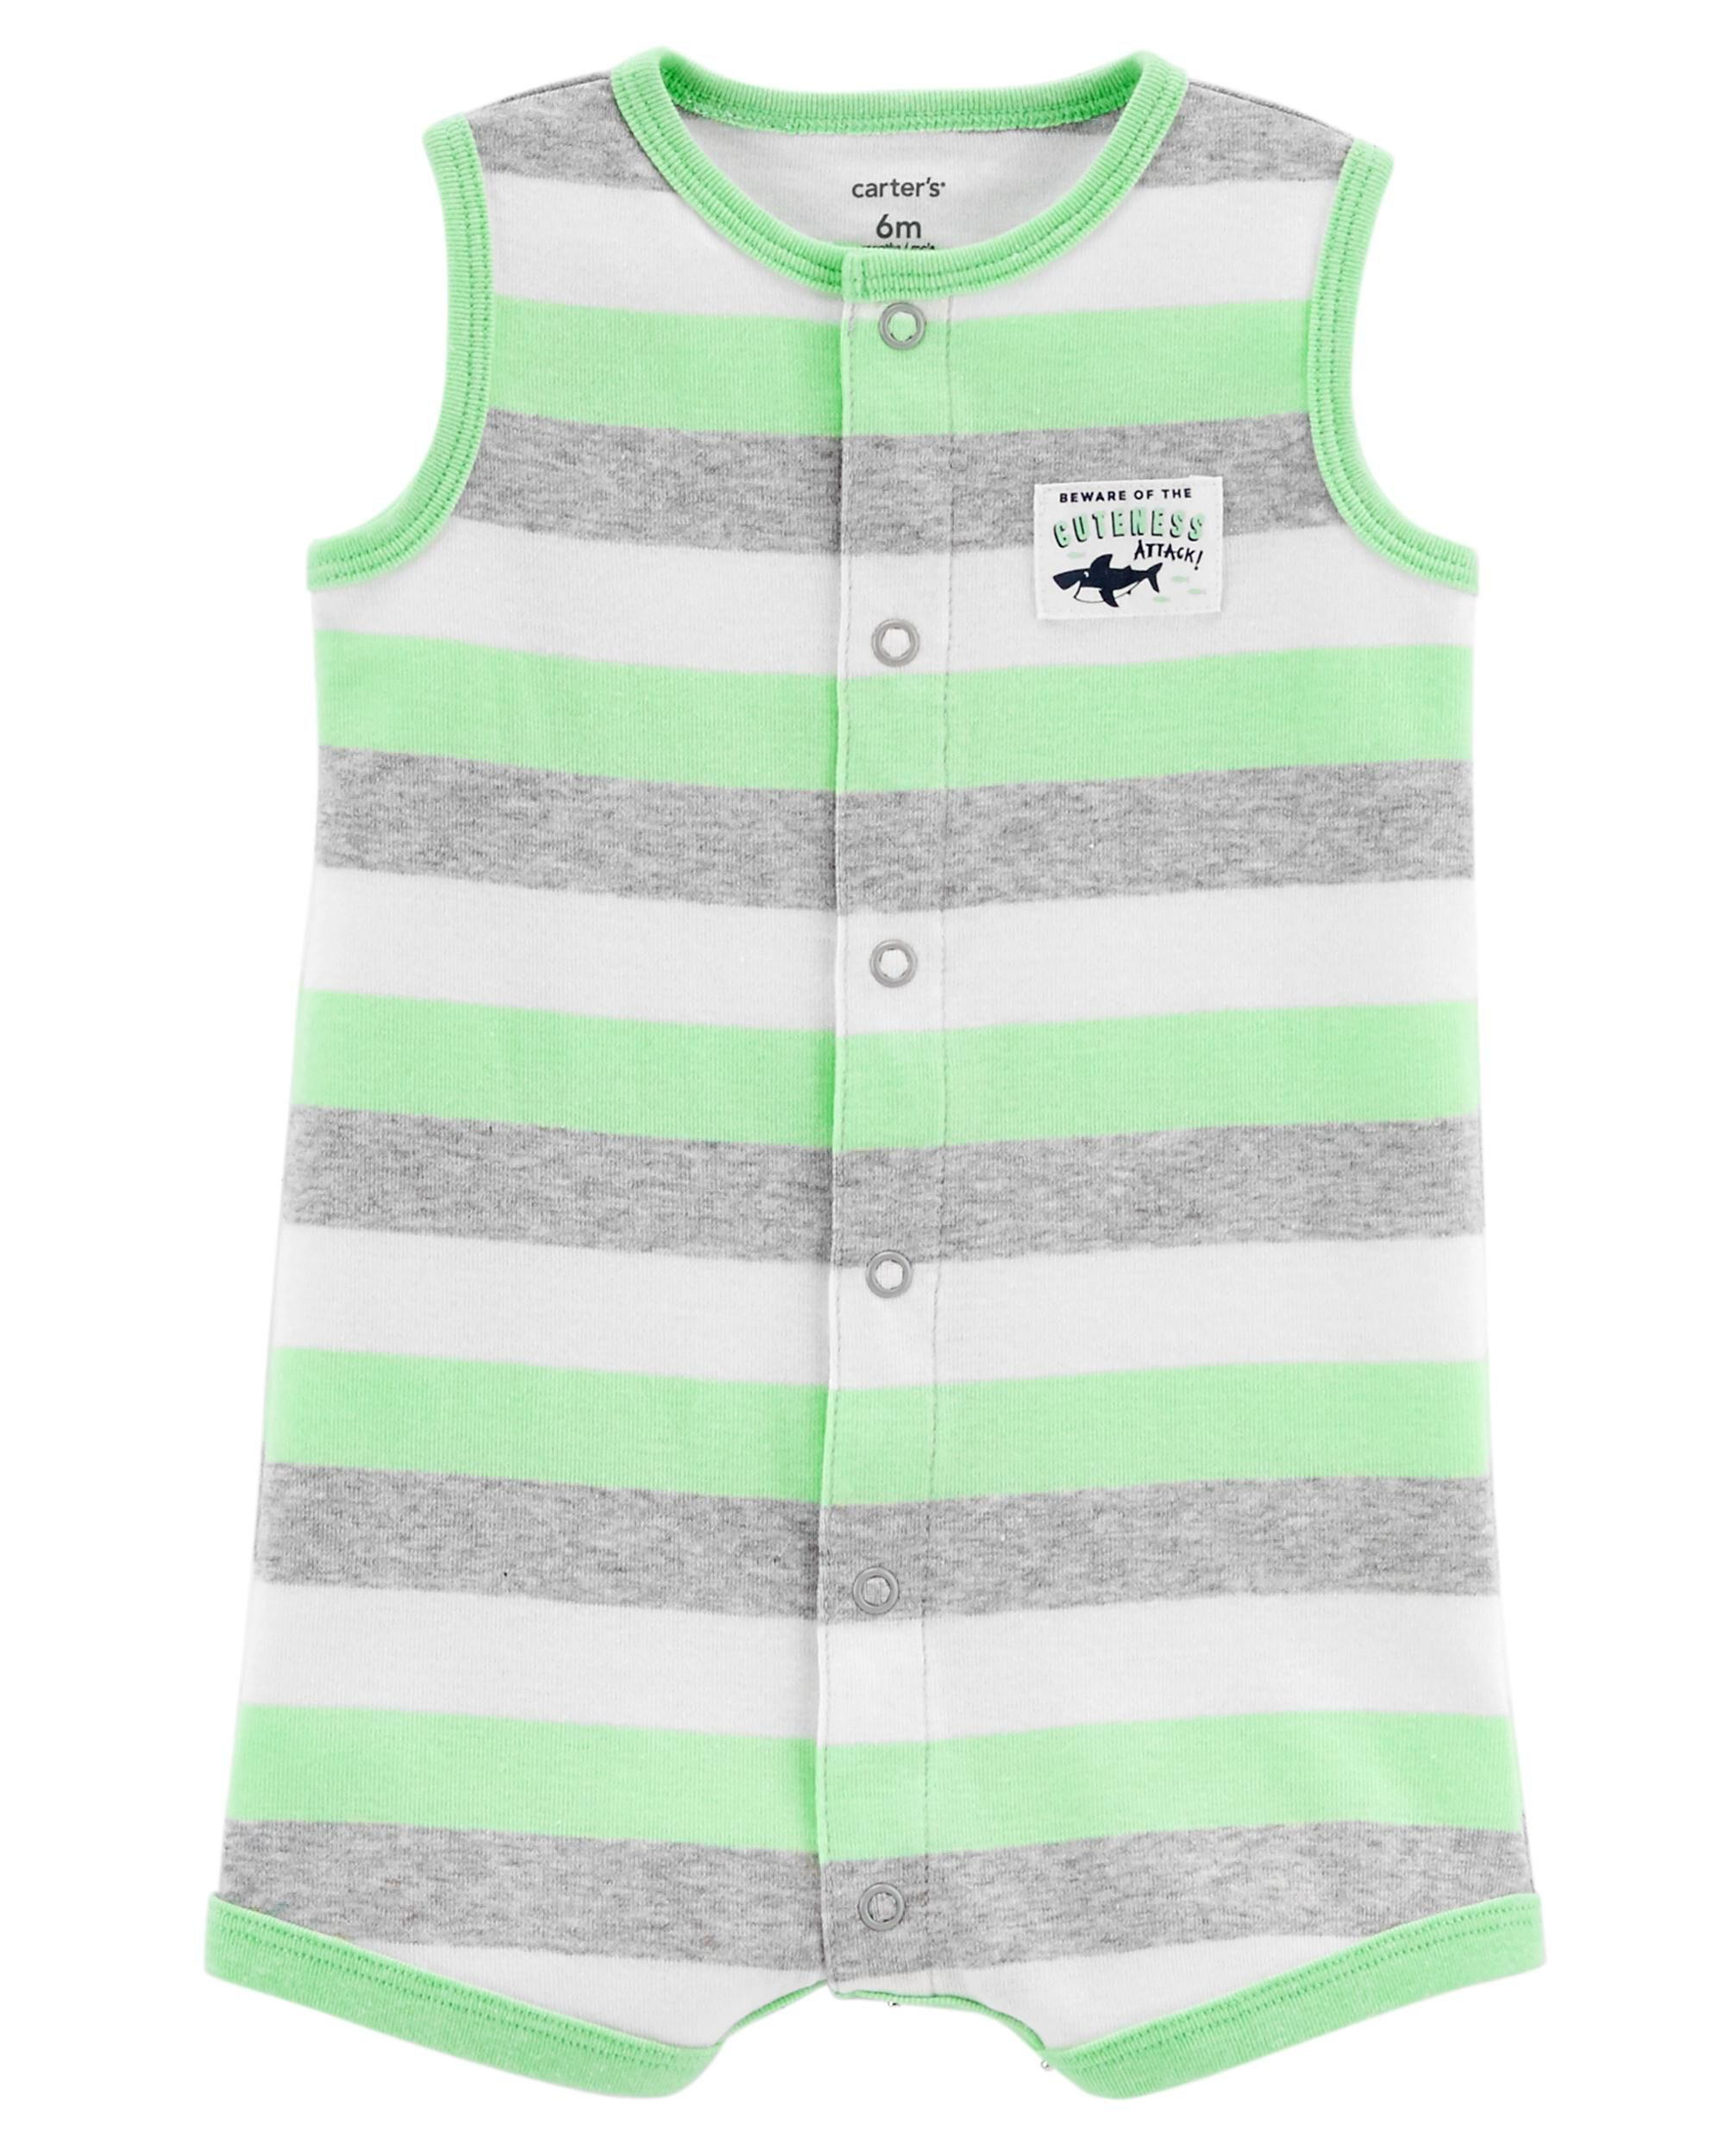 Carters Baby Boys Snap-Up Romper